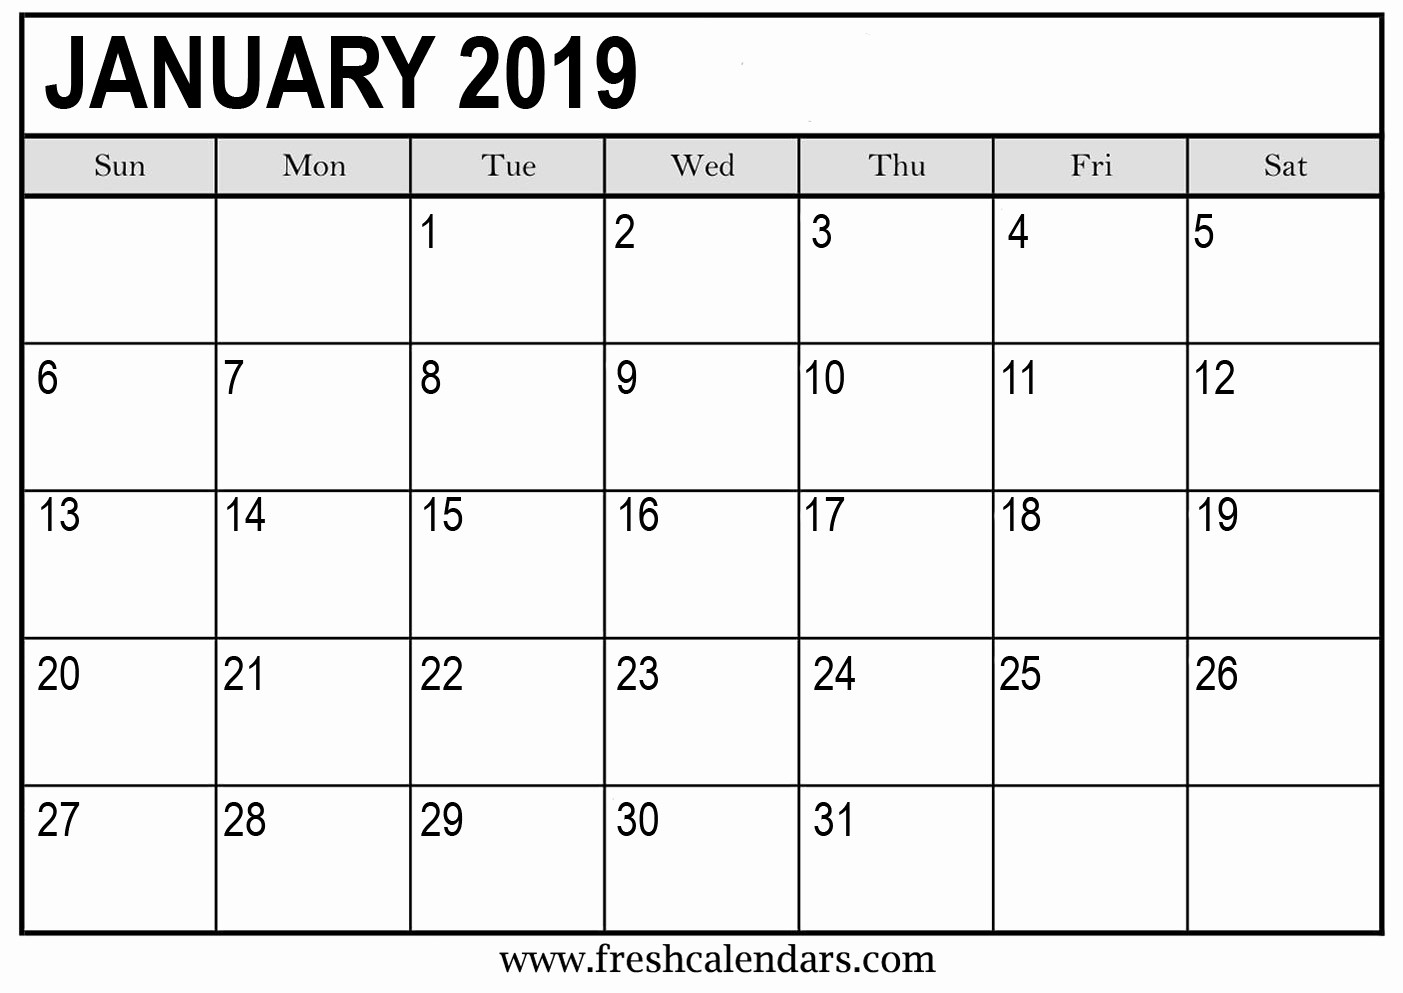 Free Printable Calendar Templates 2019 Fresh Printable January 2019 Calendar Fresh Calendars